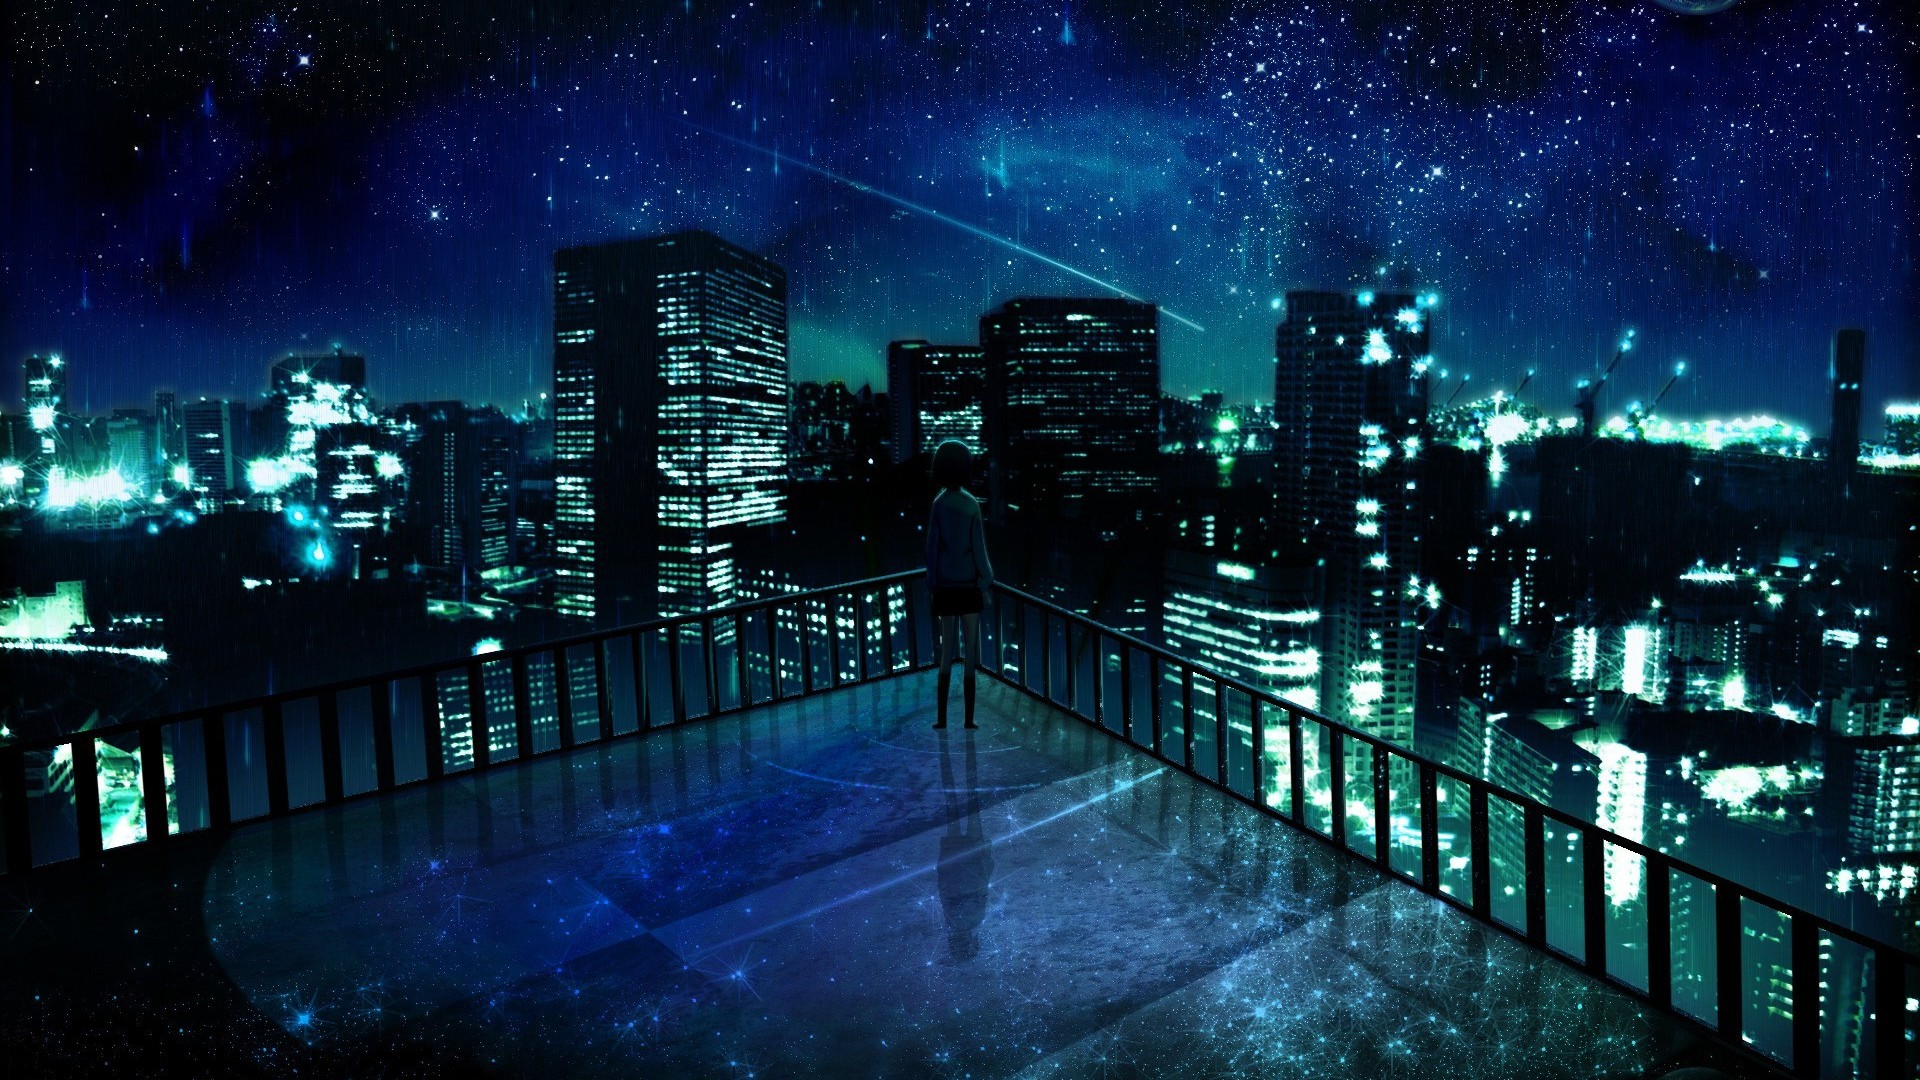 Anime City HD Wallpaper | 1920x1080 | ID:22284